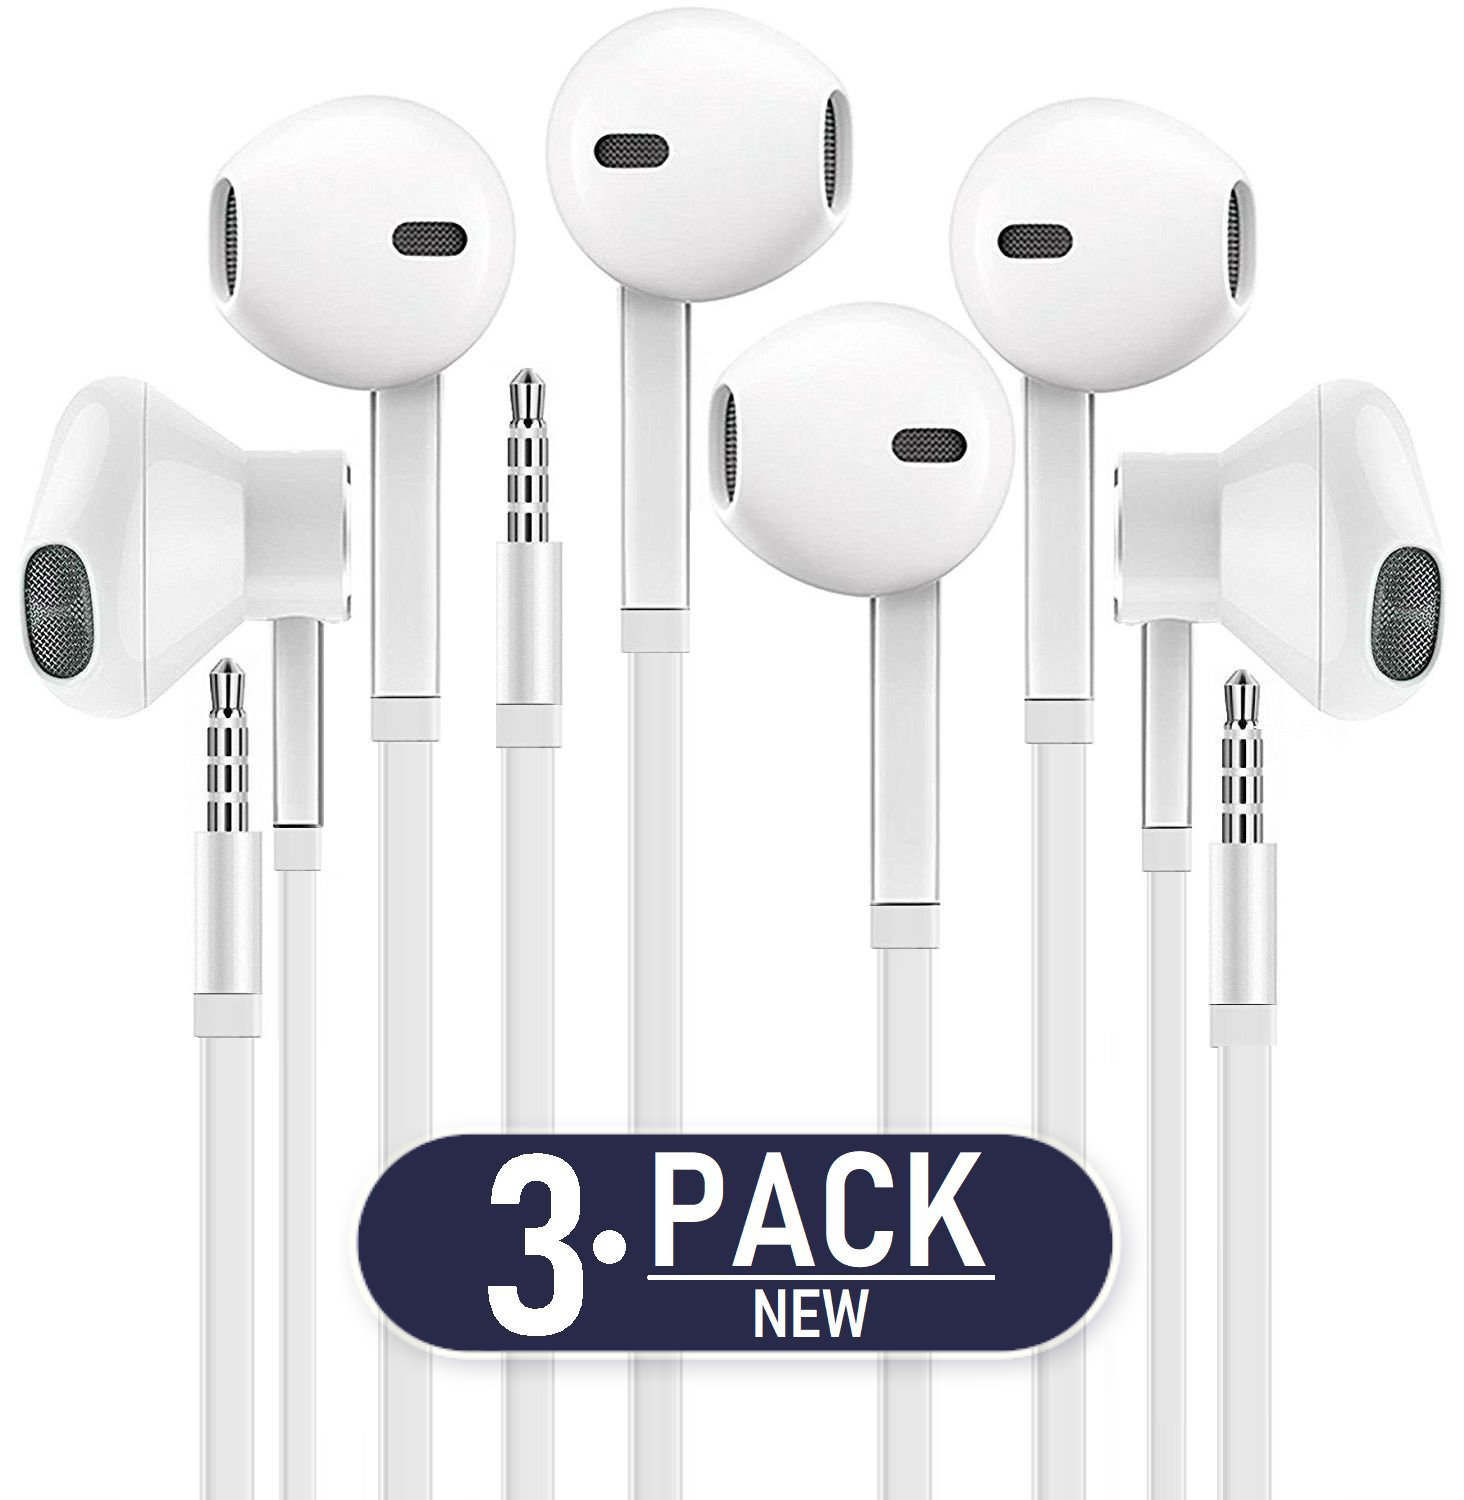 Headphones with MIC, Premium Earphones/Earbuds/Headphones [3-PACK] with Stereo Mic&Remote Control for iPhone iPad iPod Samsung Galaxy and More Nexus Android Smartphones - White